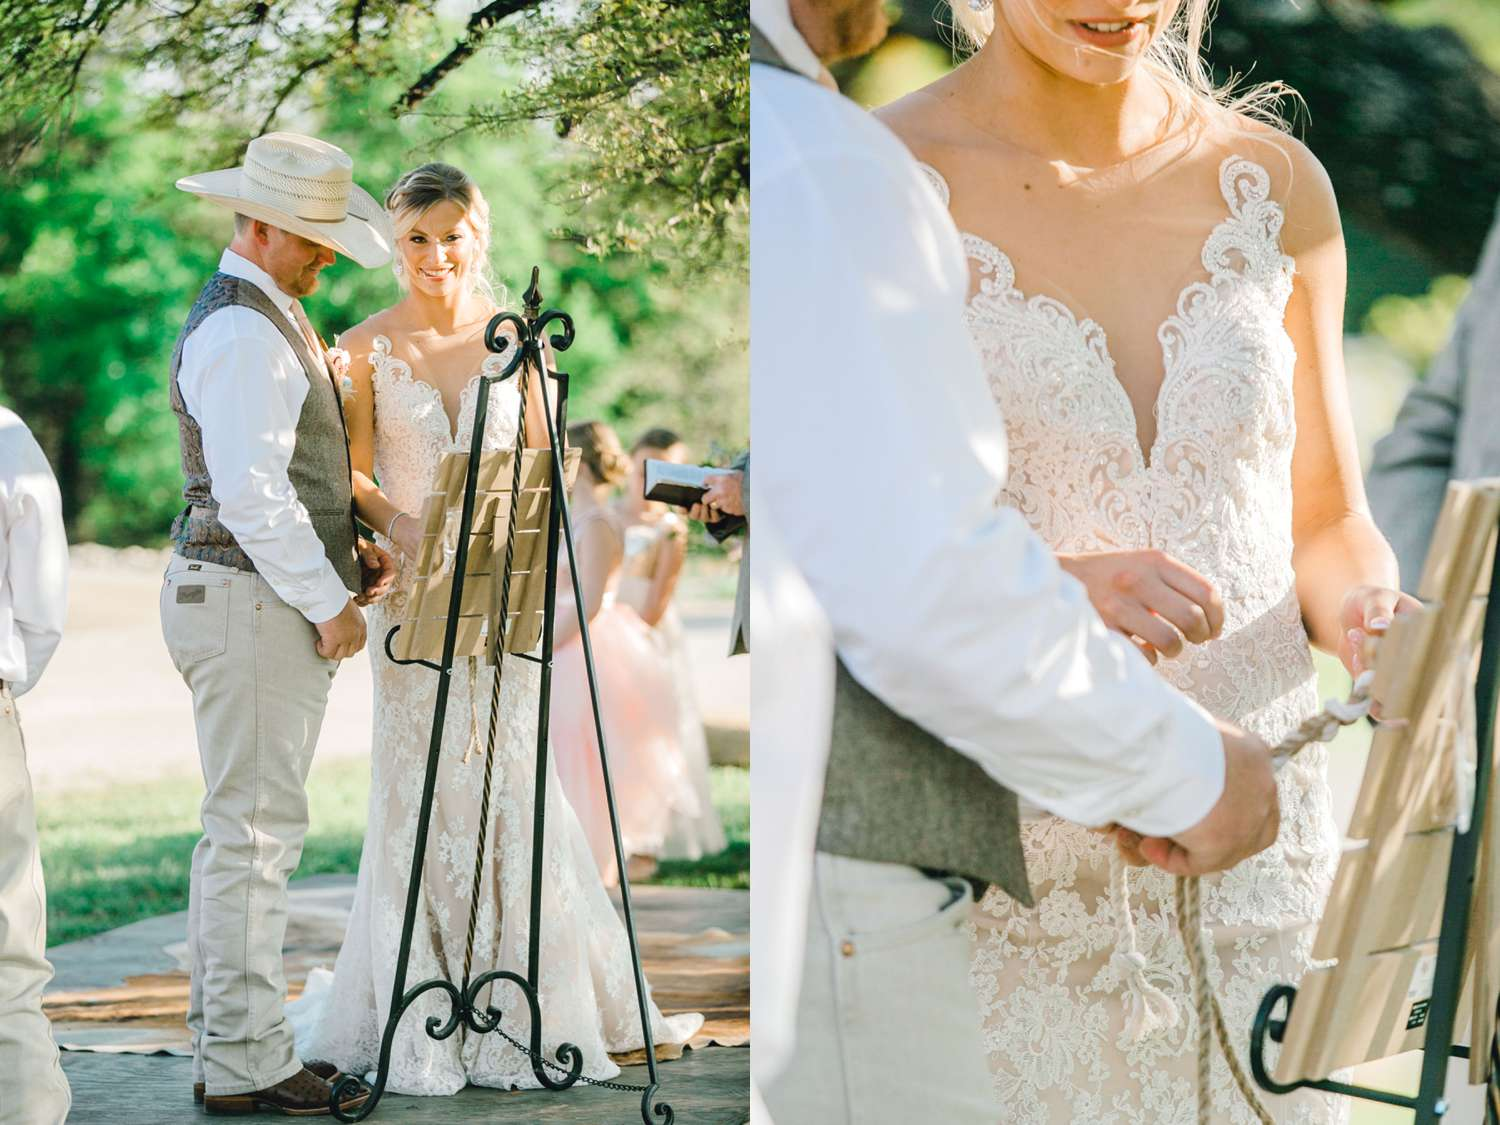 SARAH+TREVOR+BADGETT+SPARROW+CREEK+GRAHAM+TEXAS+ALLEEJ+WEDDINGS_0072.jpg